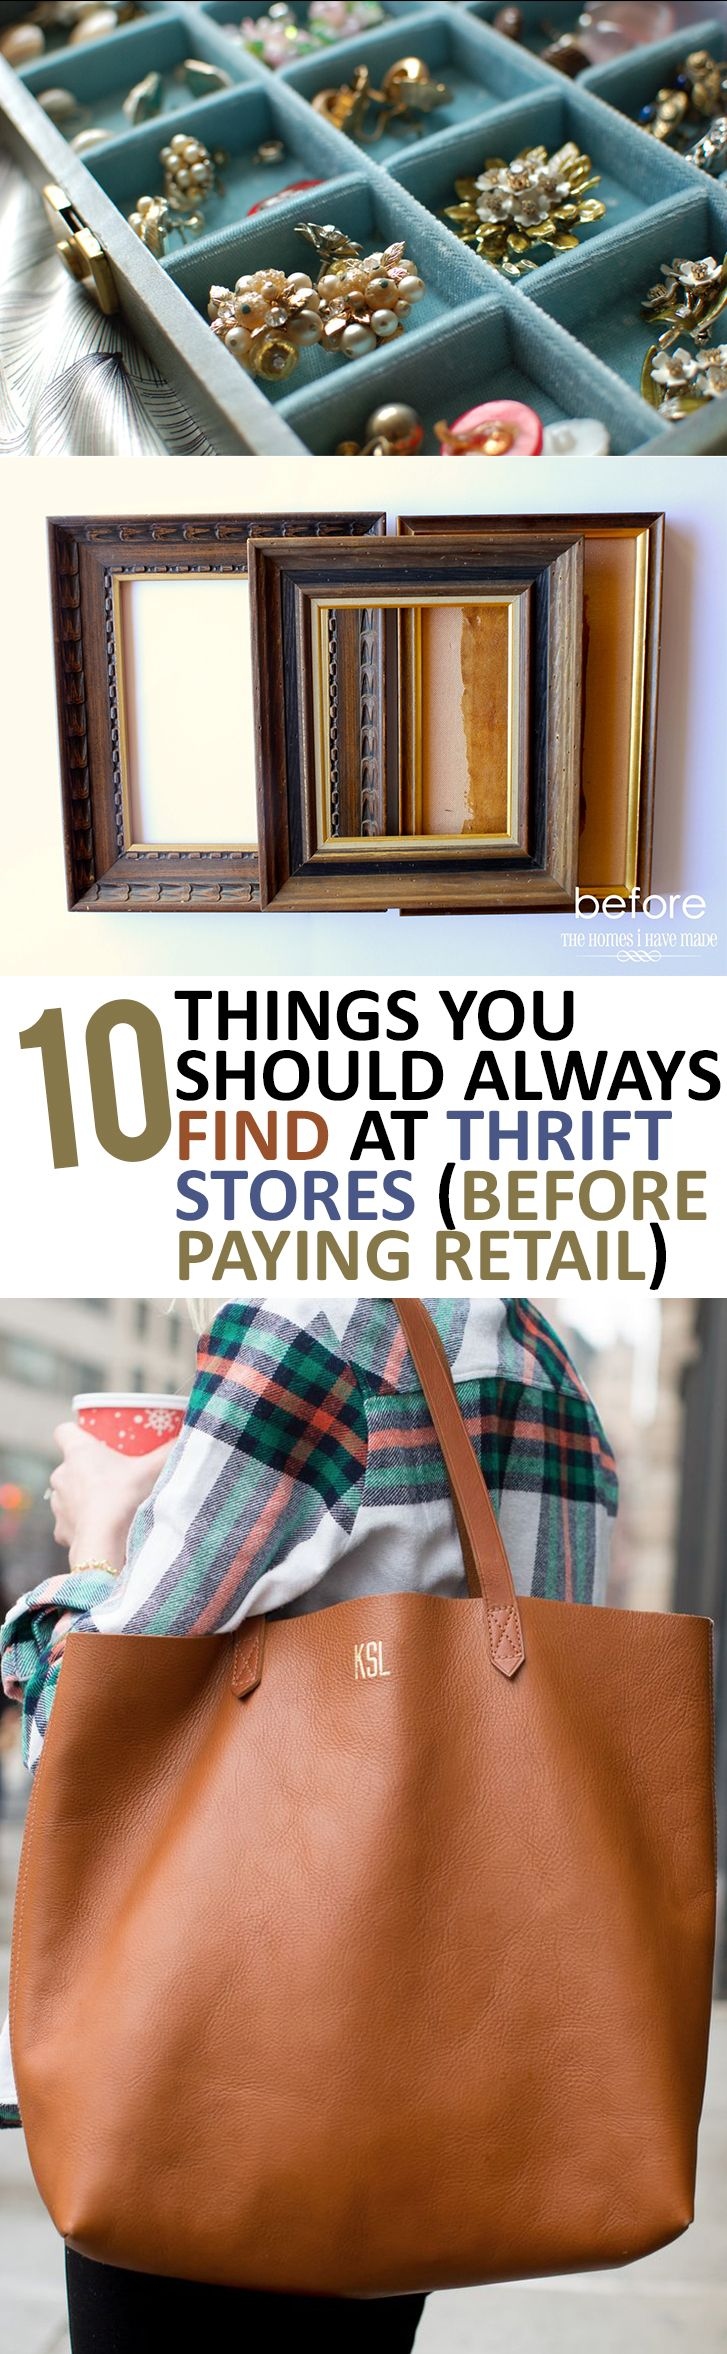 10 Things You Should Always Find at Thrift Stores Before Paying Retail